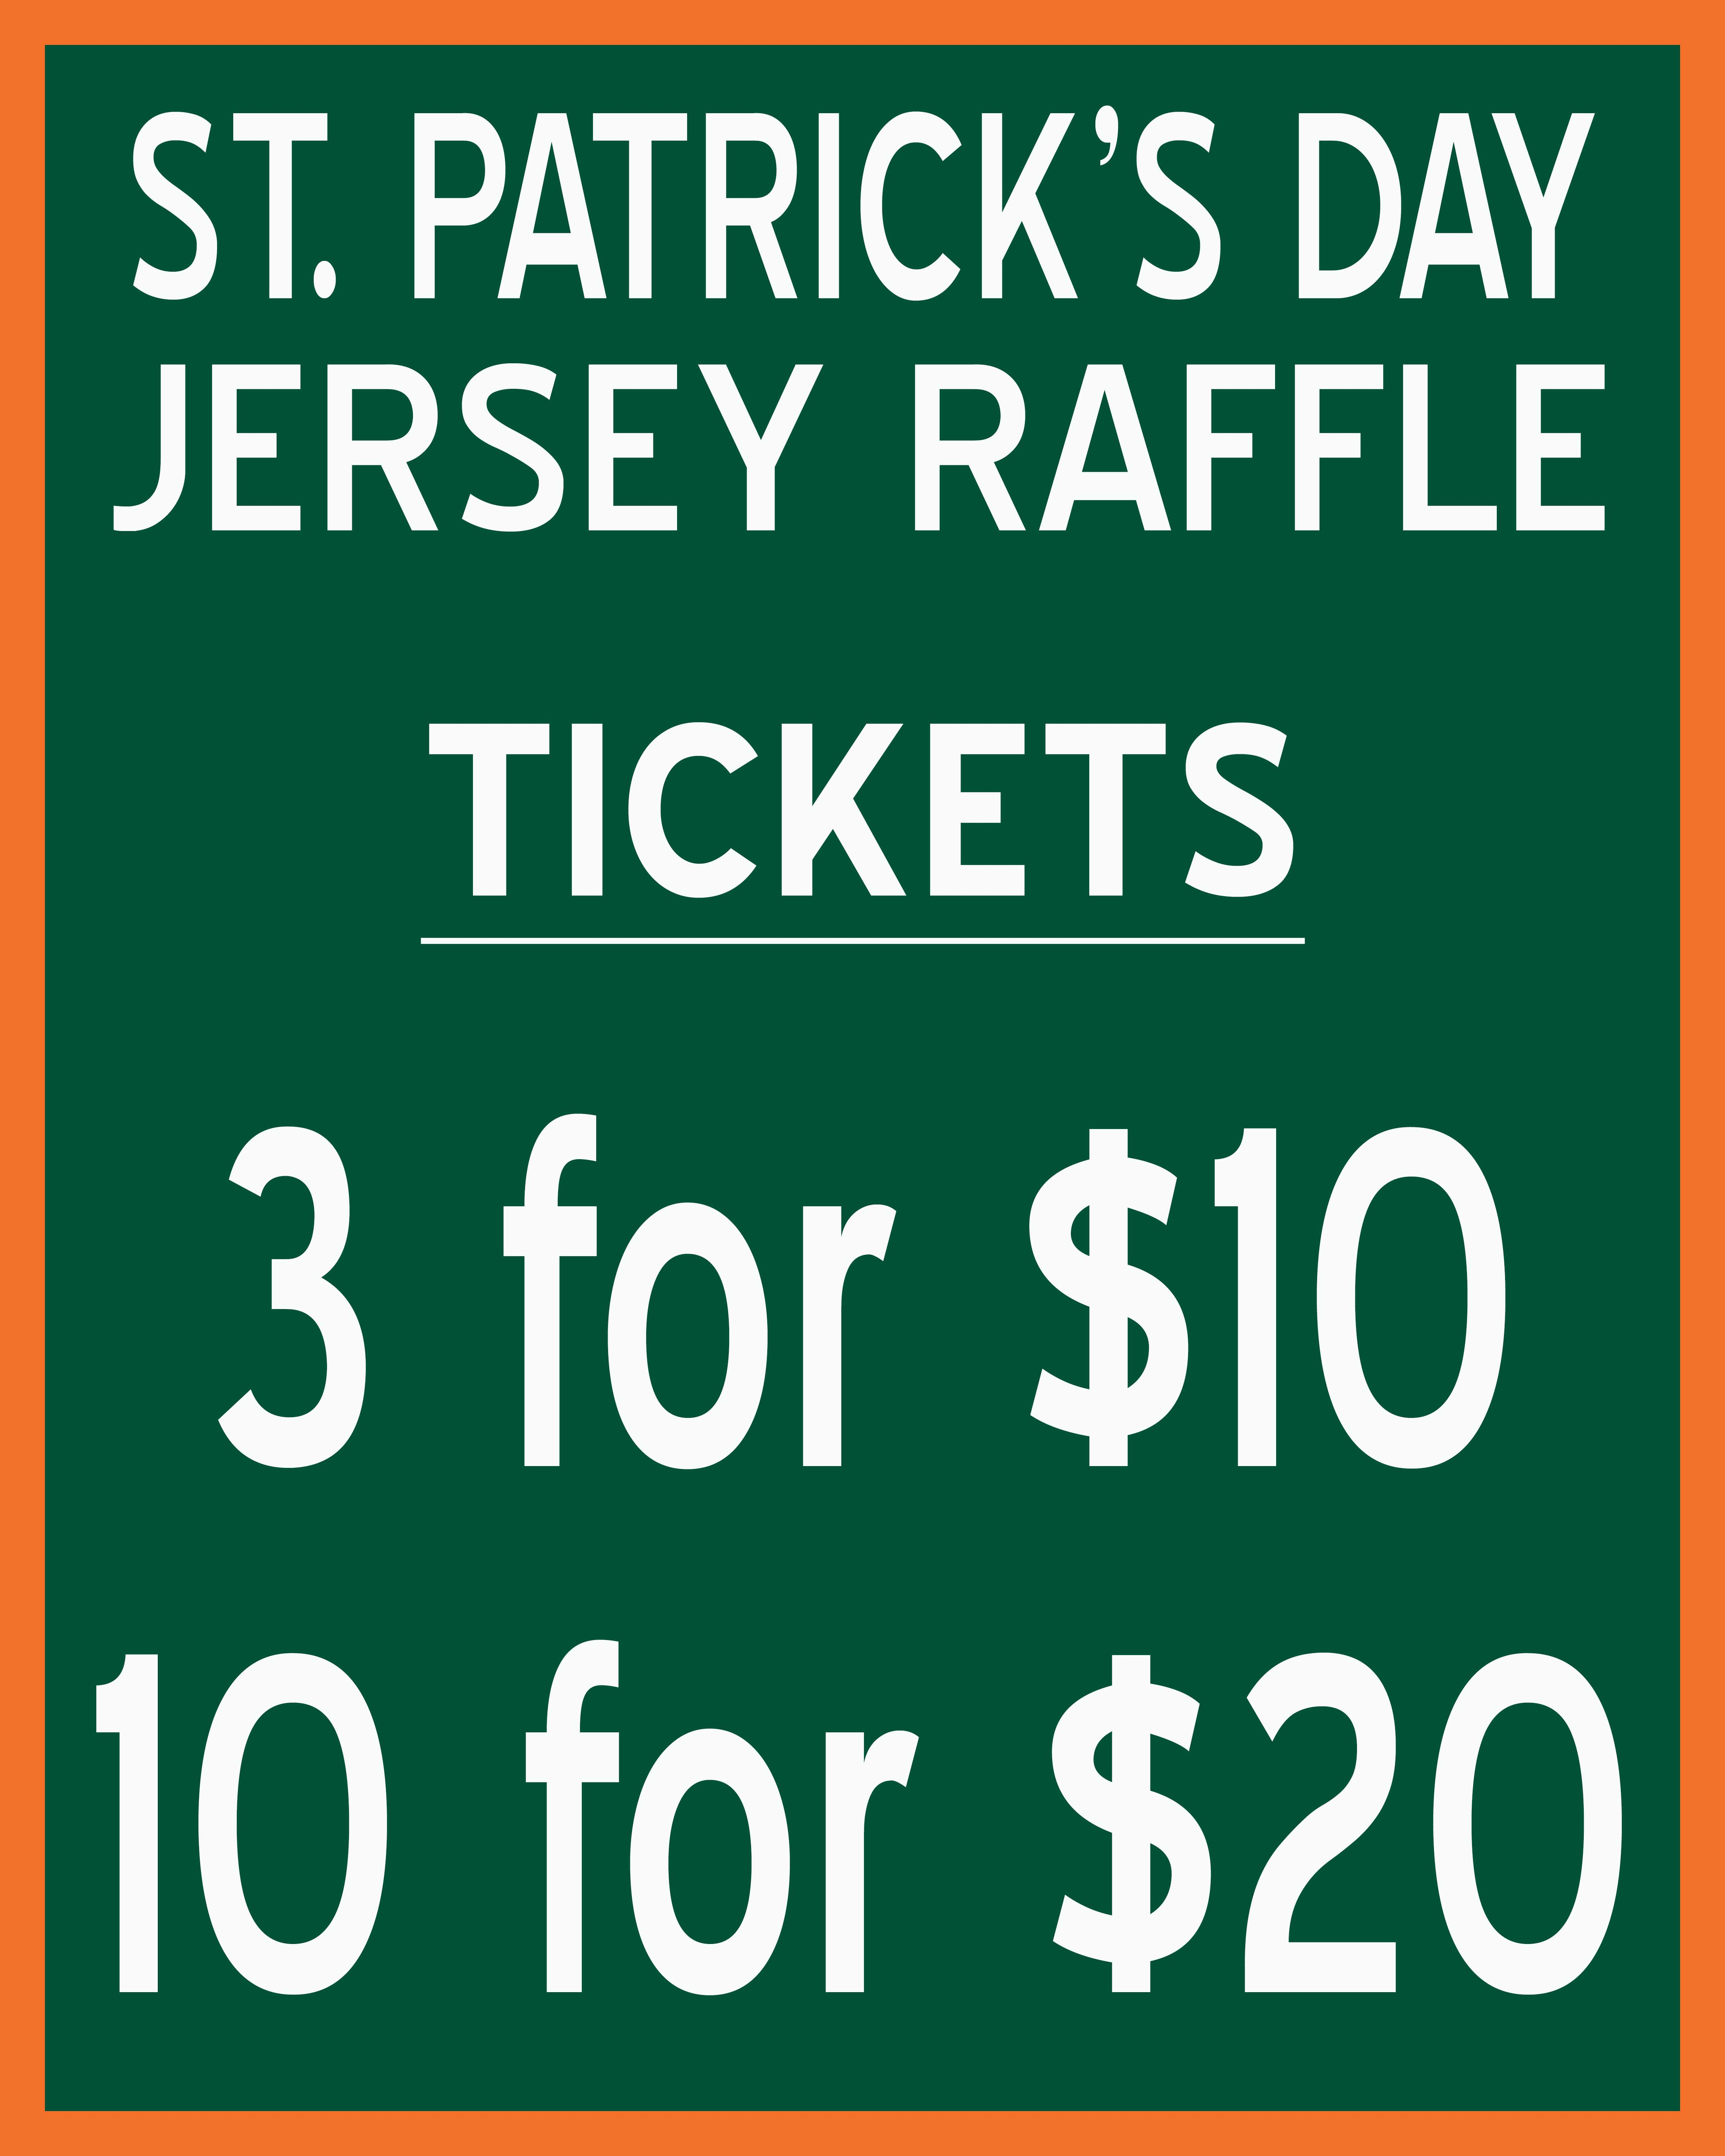 fort wayne st patricks day game select jerseys will be available for silent auction all proceeds benefitting